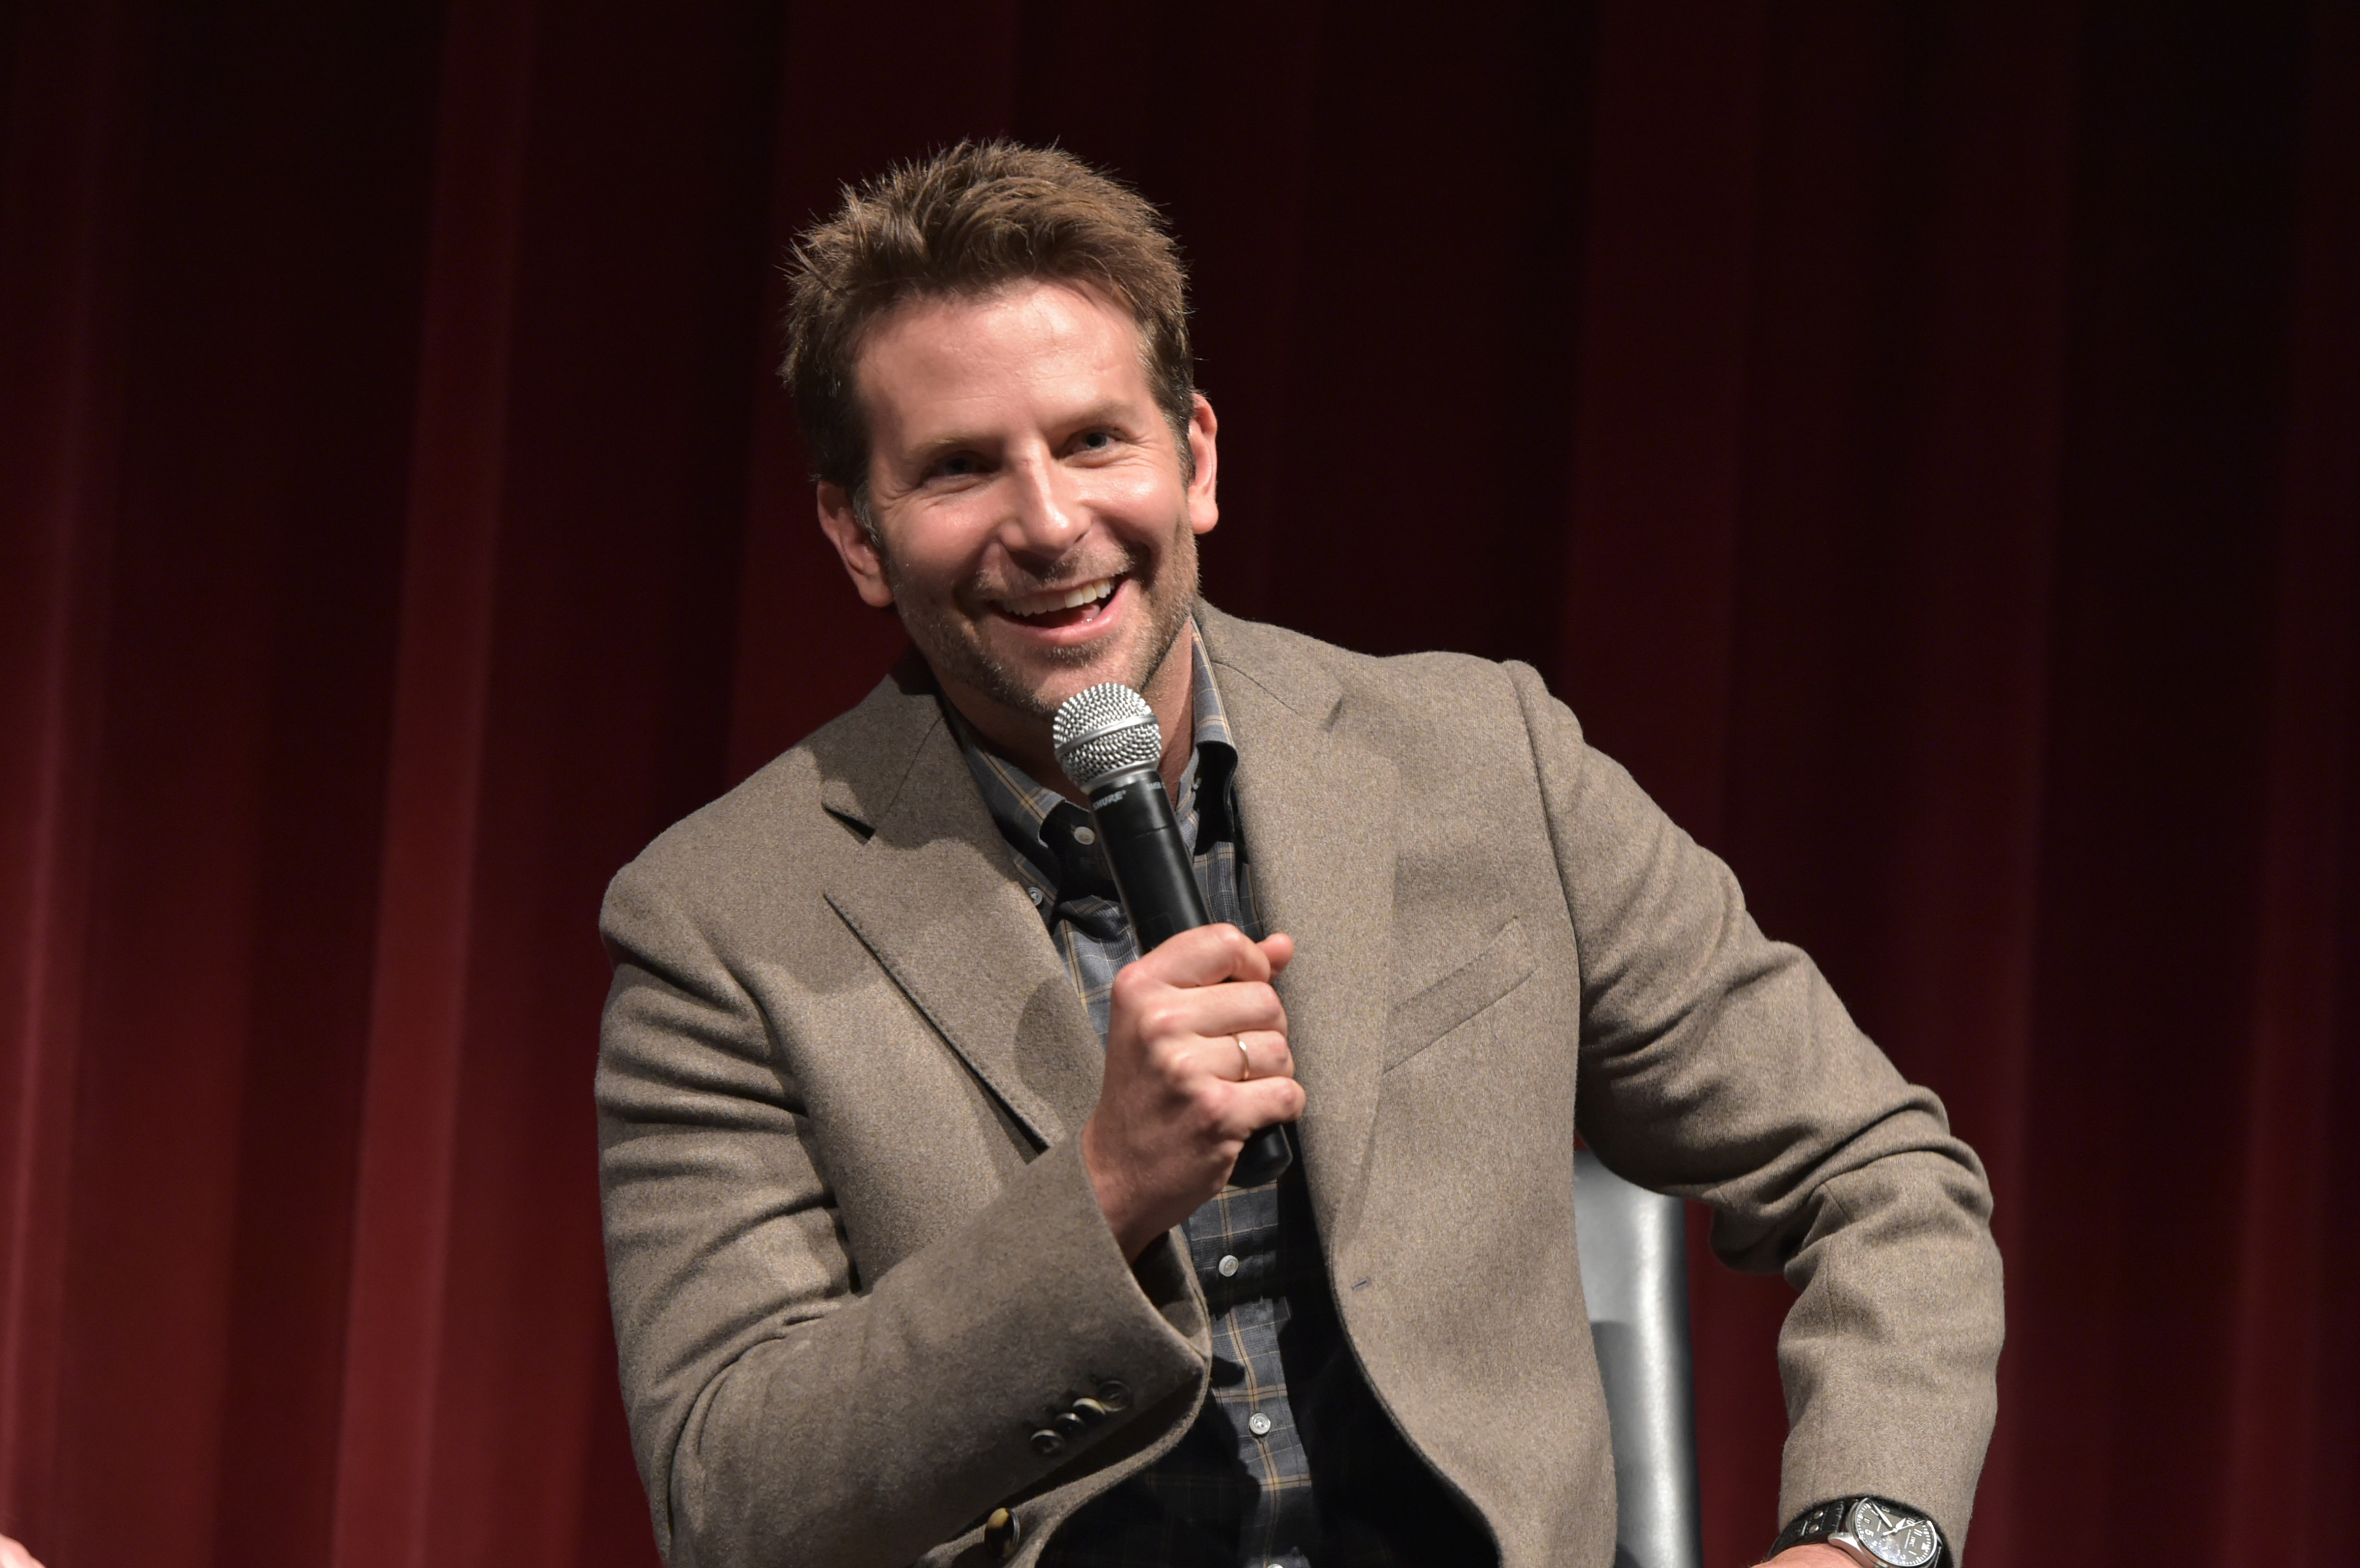 Bradley Cooper at the Private Screening Of  Burnt,  Q&A Panel And Reception during New York City Wine & Food Festival in New York City on Oct. 18, 2015.